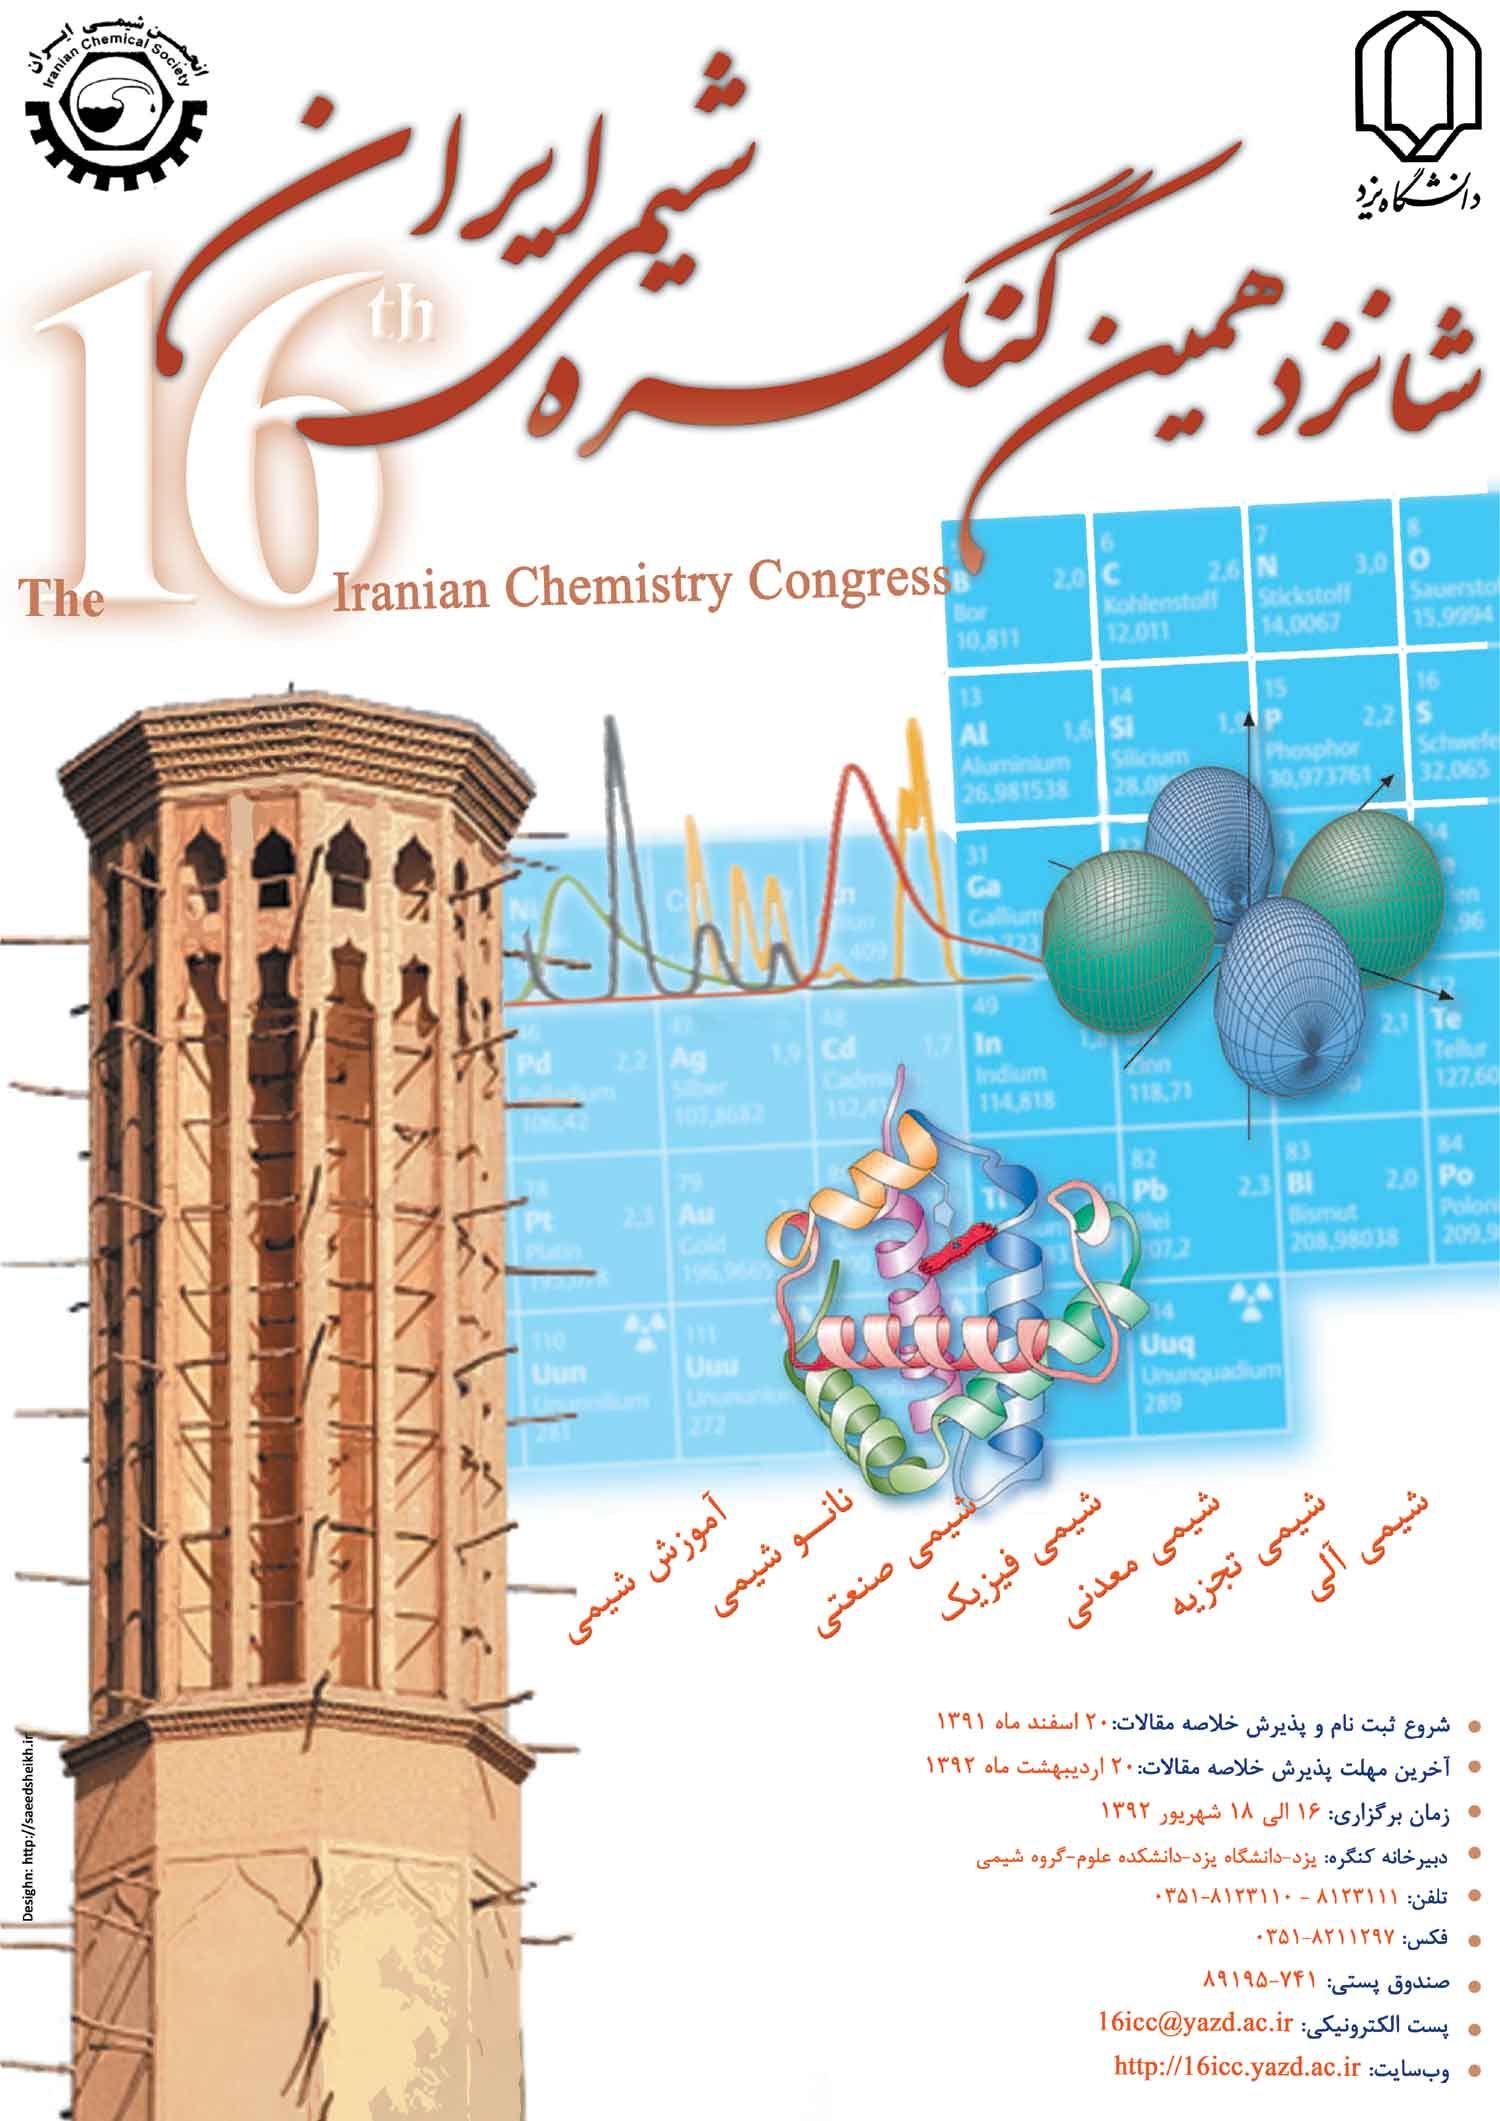 The-16th-Iranian-Chemistry-Congress_www.